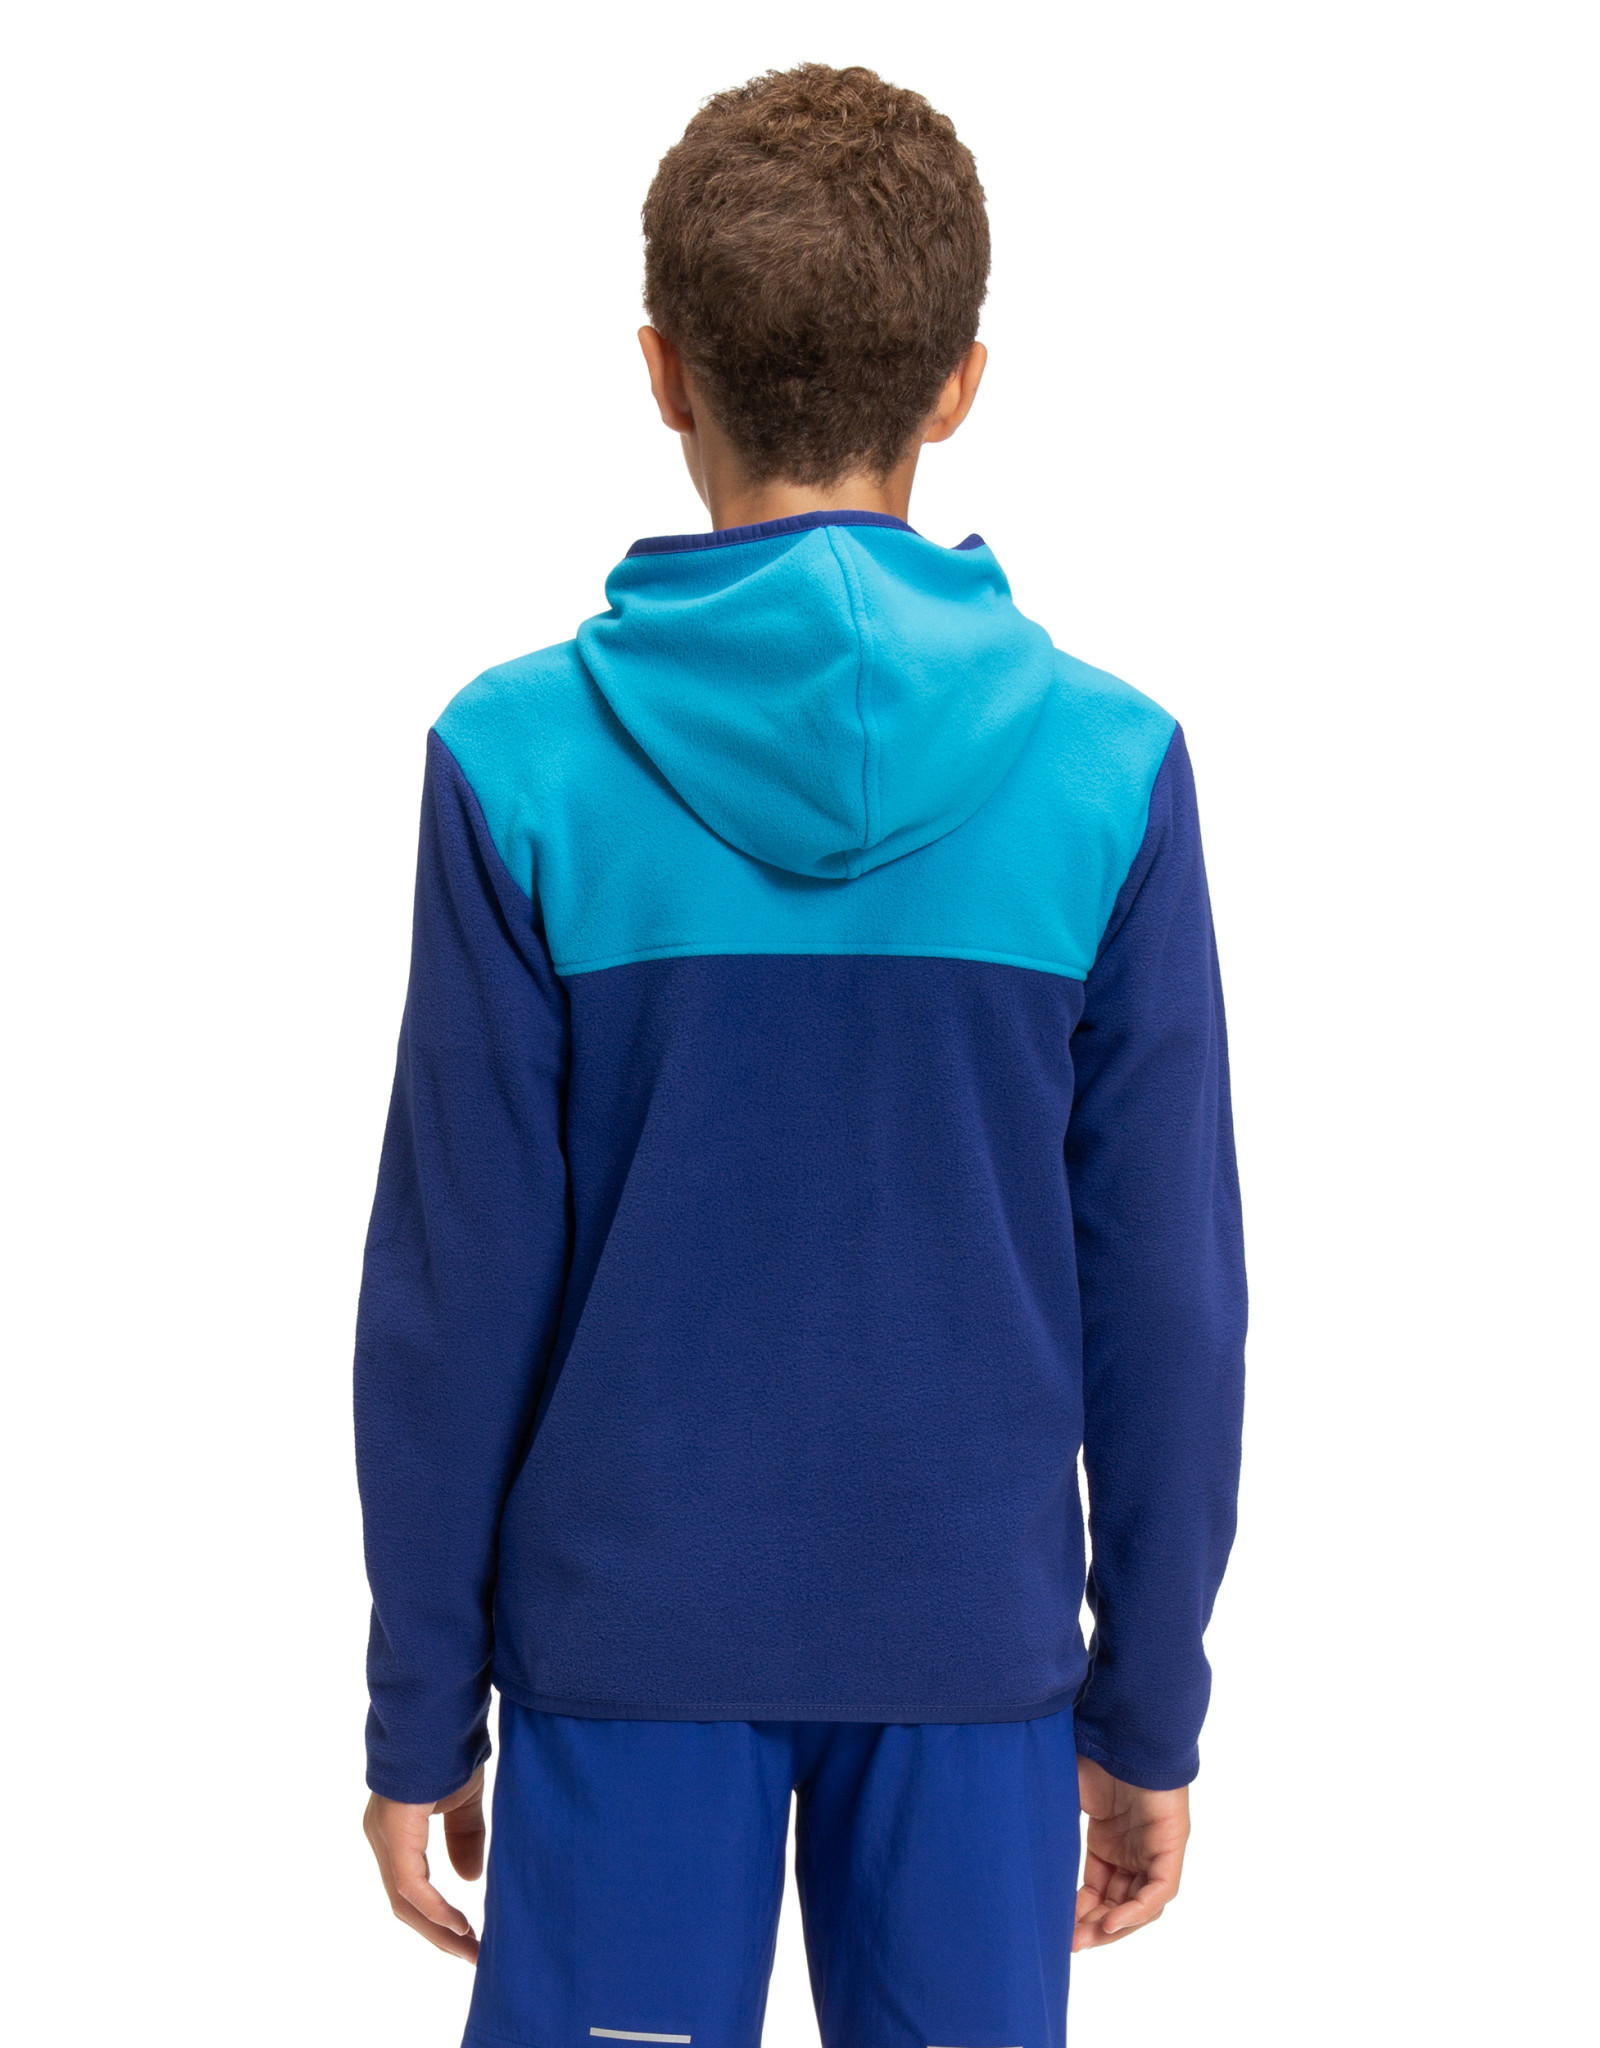 The North Face The North Face Boy's Glacier Full Zip Hoodie -S2021